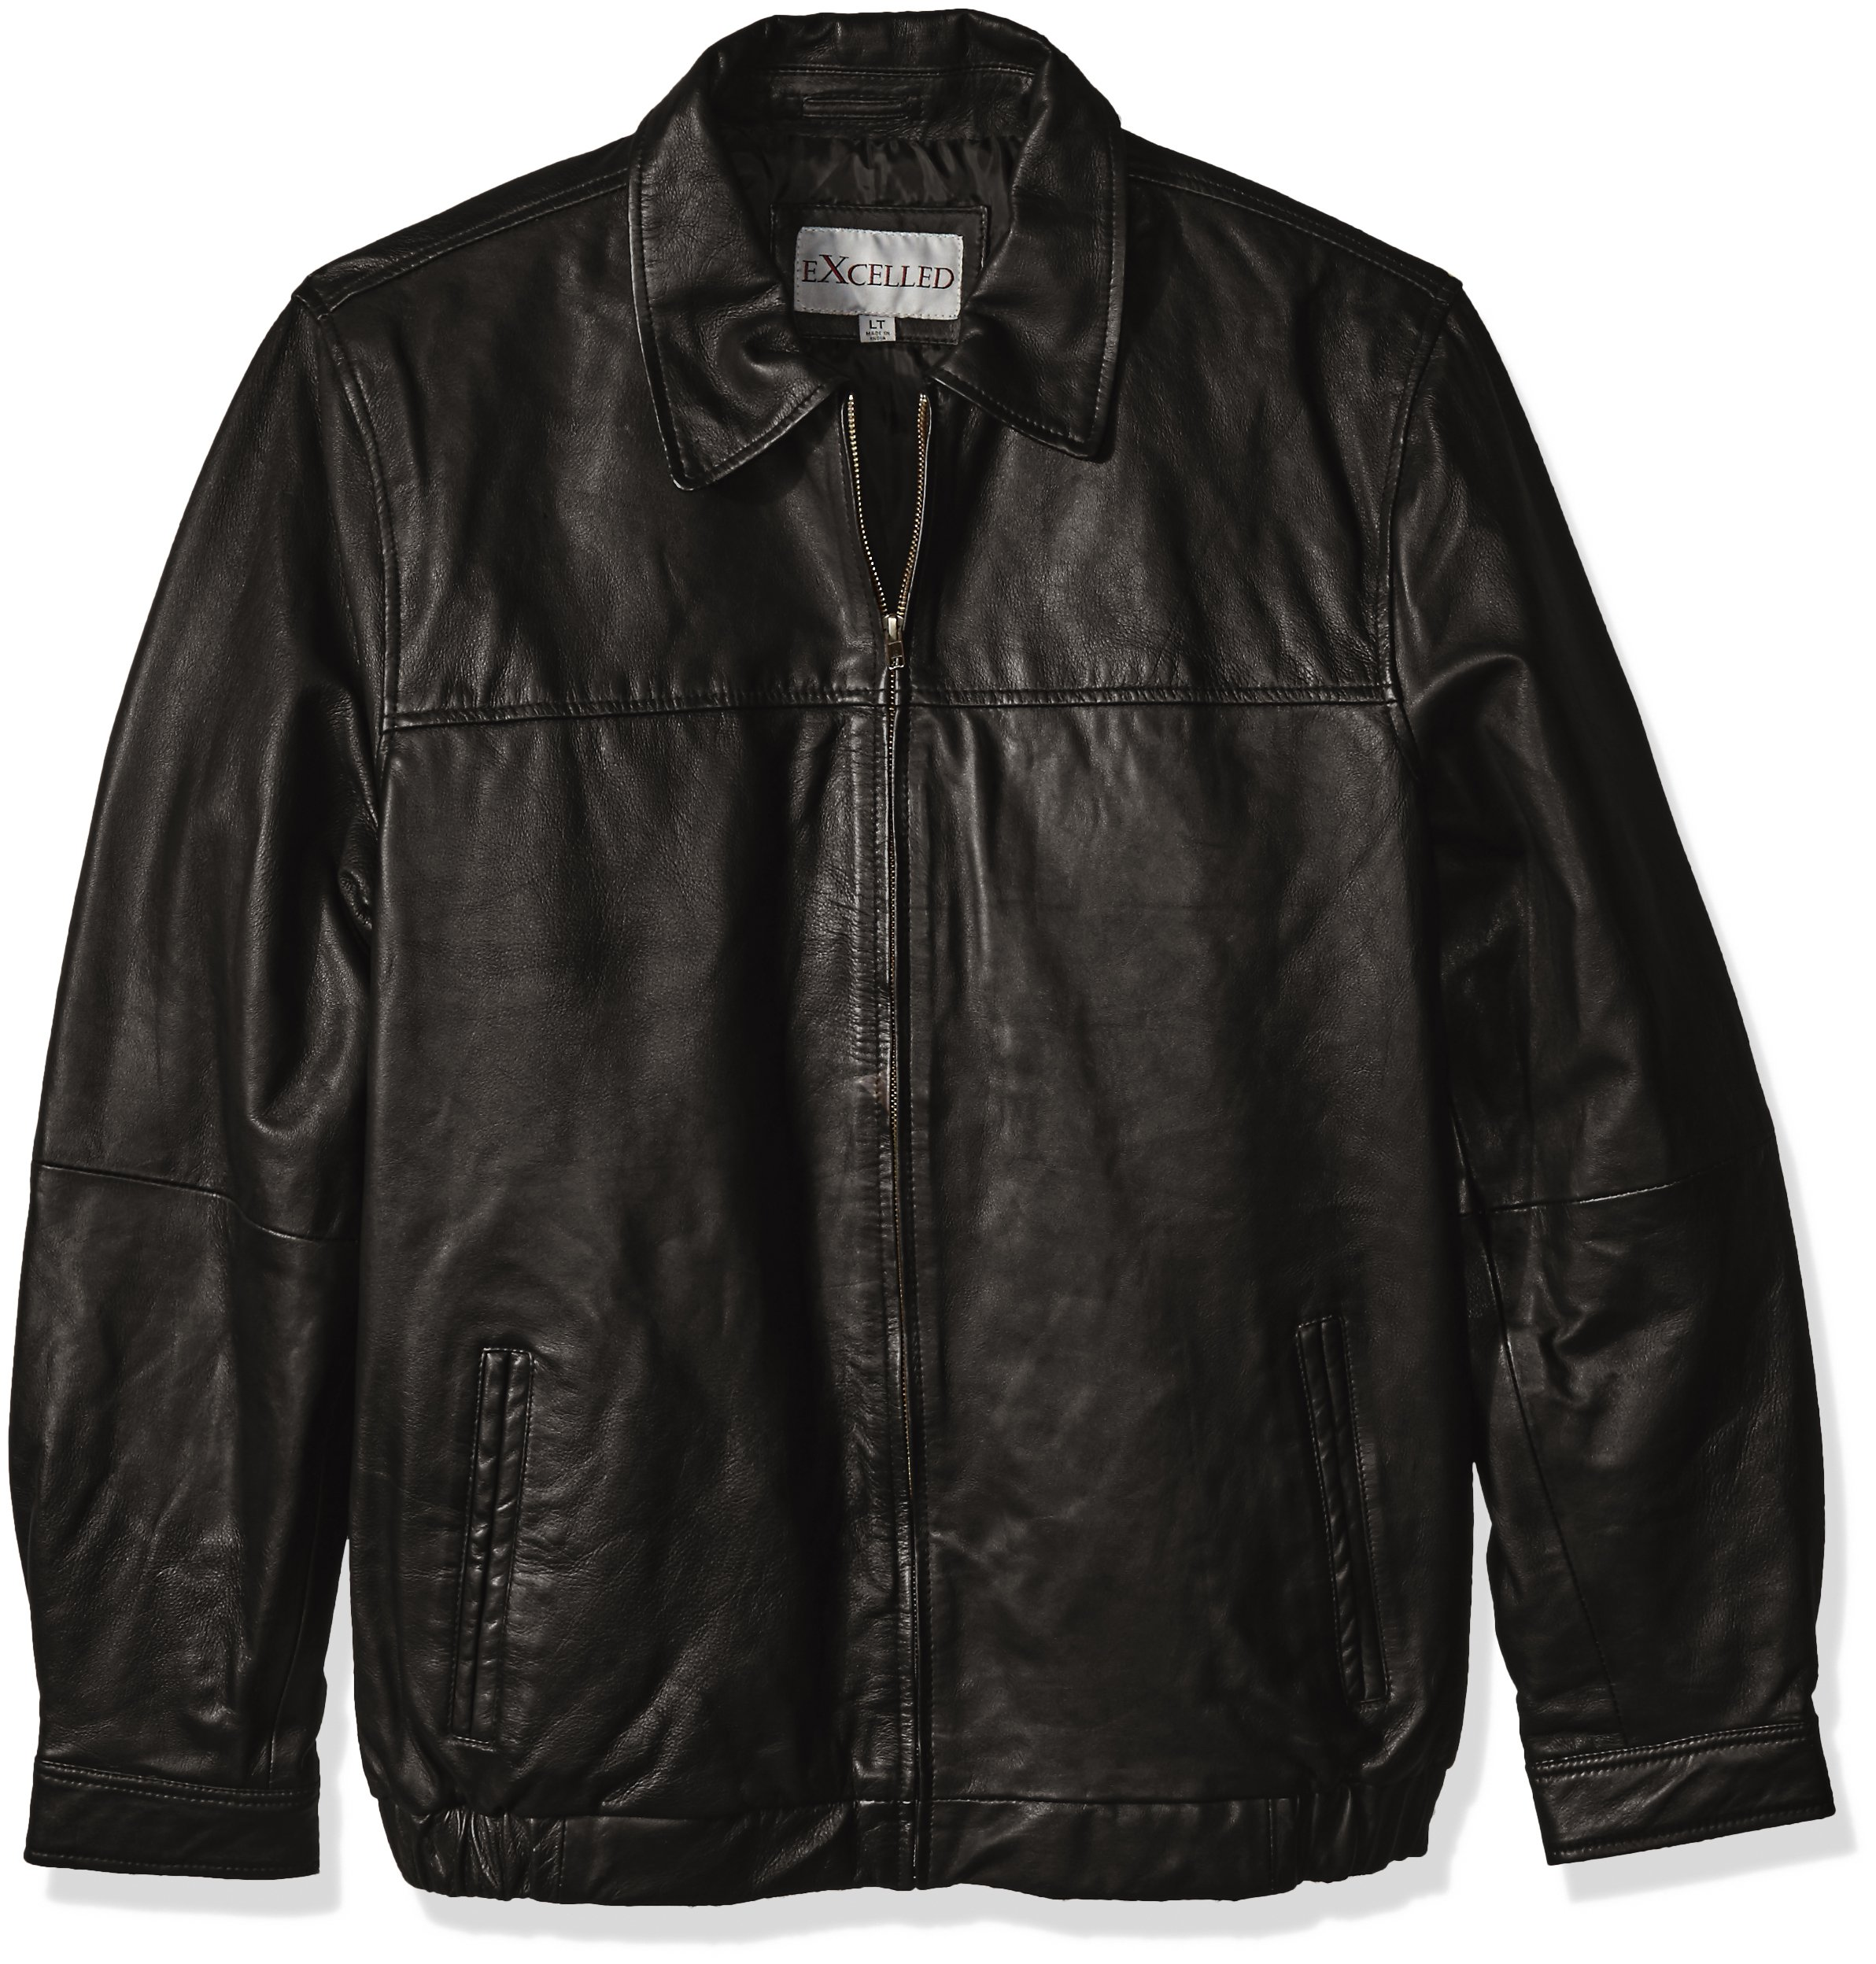 Excelled Men's Big and Tall Shirt Collar Leather Jacket, Black, 4XL